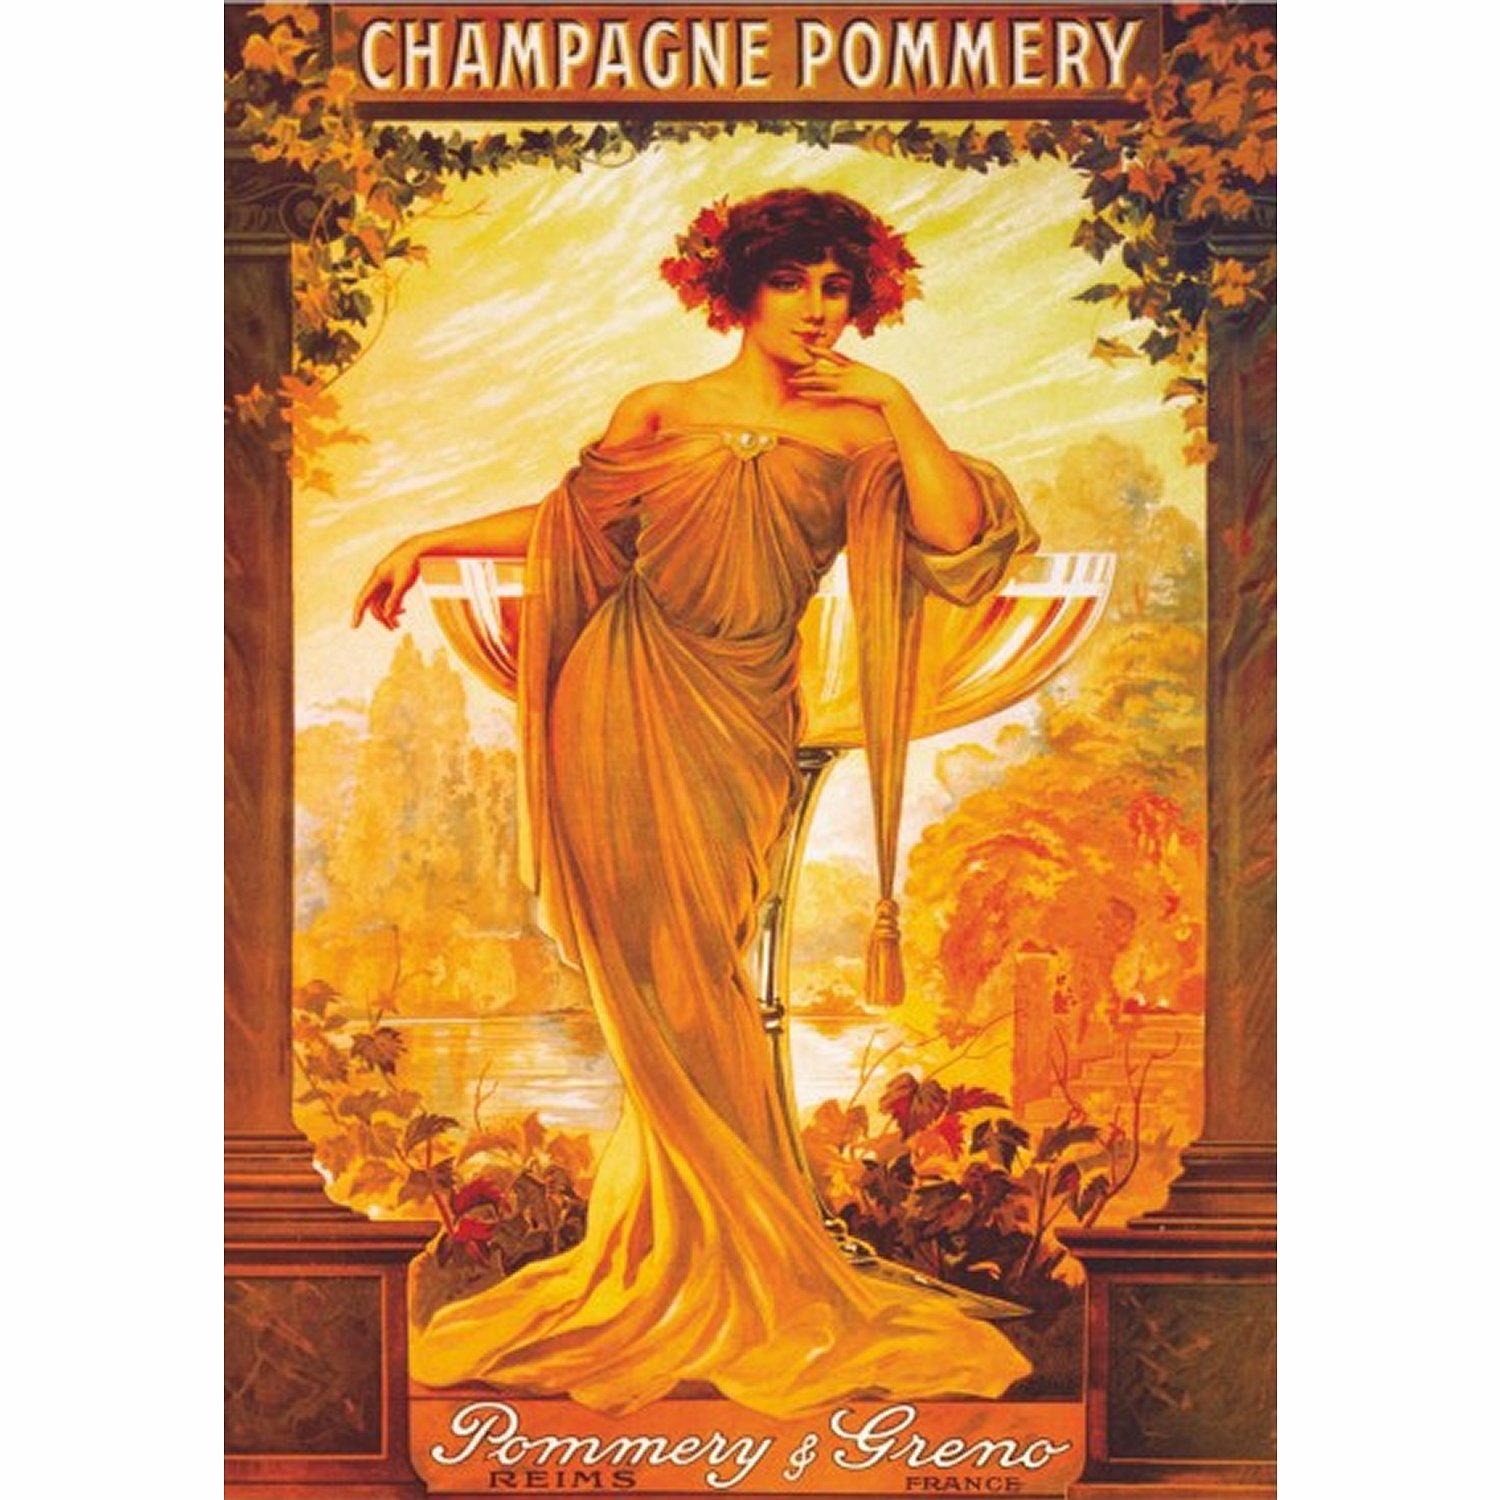 dtoys-vintage-posters-champagne-pommery-1000-teile-puzzle-dtoys-69474